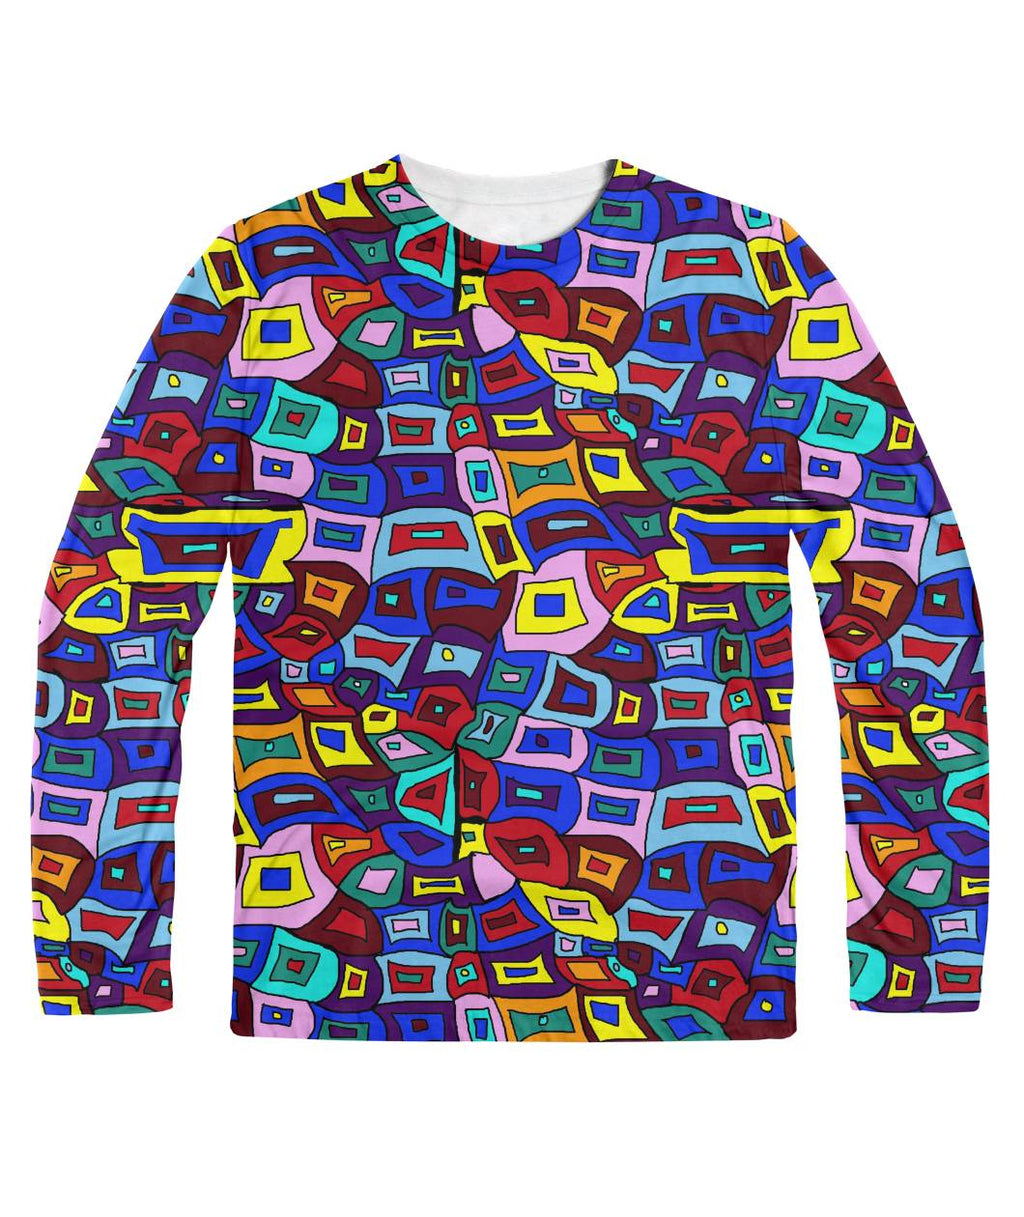 Wavy Squares Pattern Longsleeve Sublimation Long Sleeve